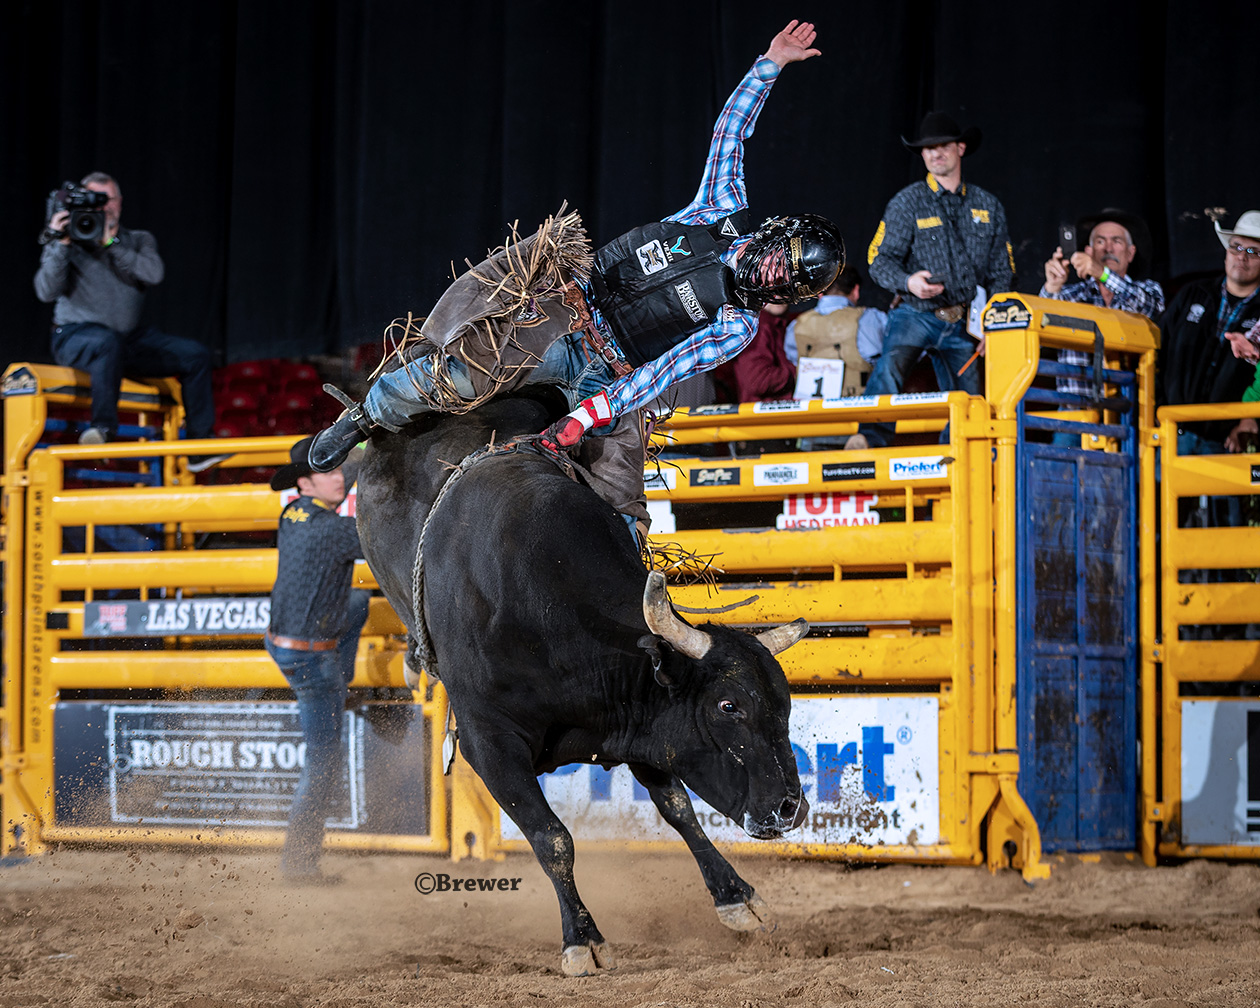 bbb72973 Crockett, Texas bull rider phenom Boudreaux Campbell, the most recent THBRT  Champion from Las